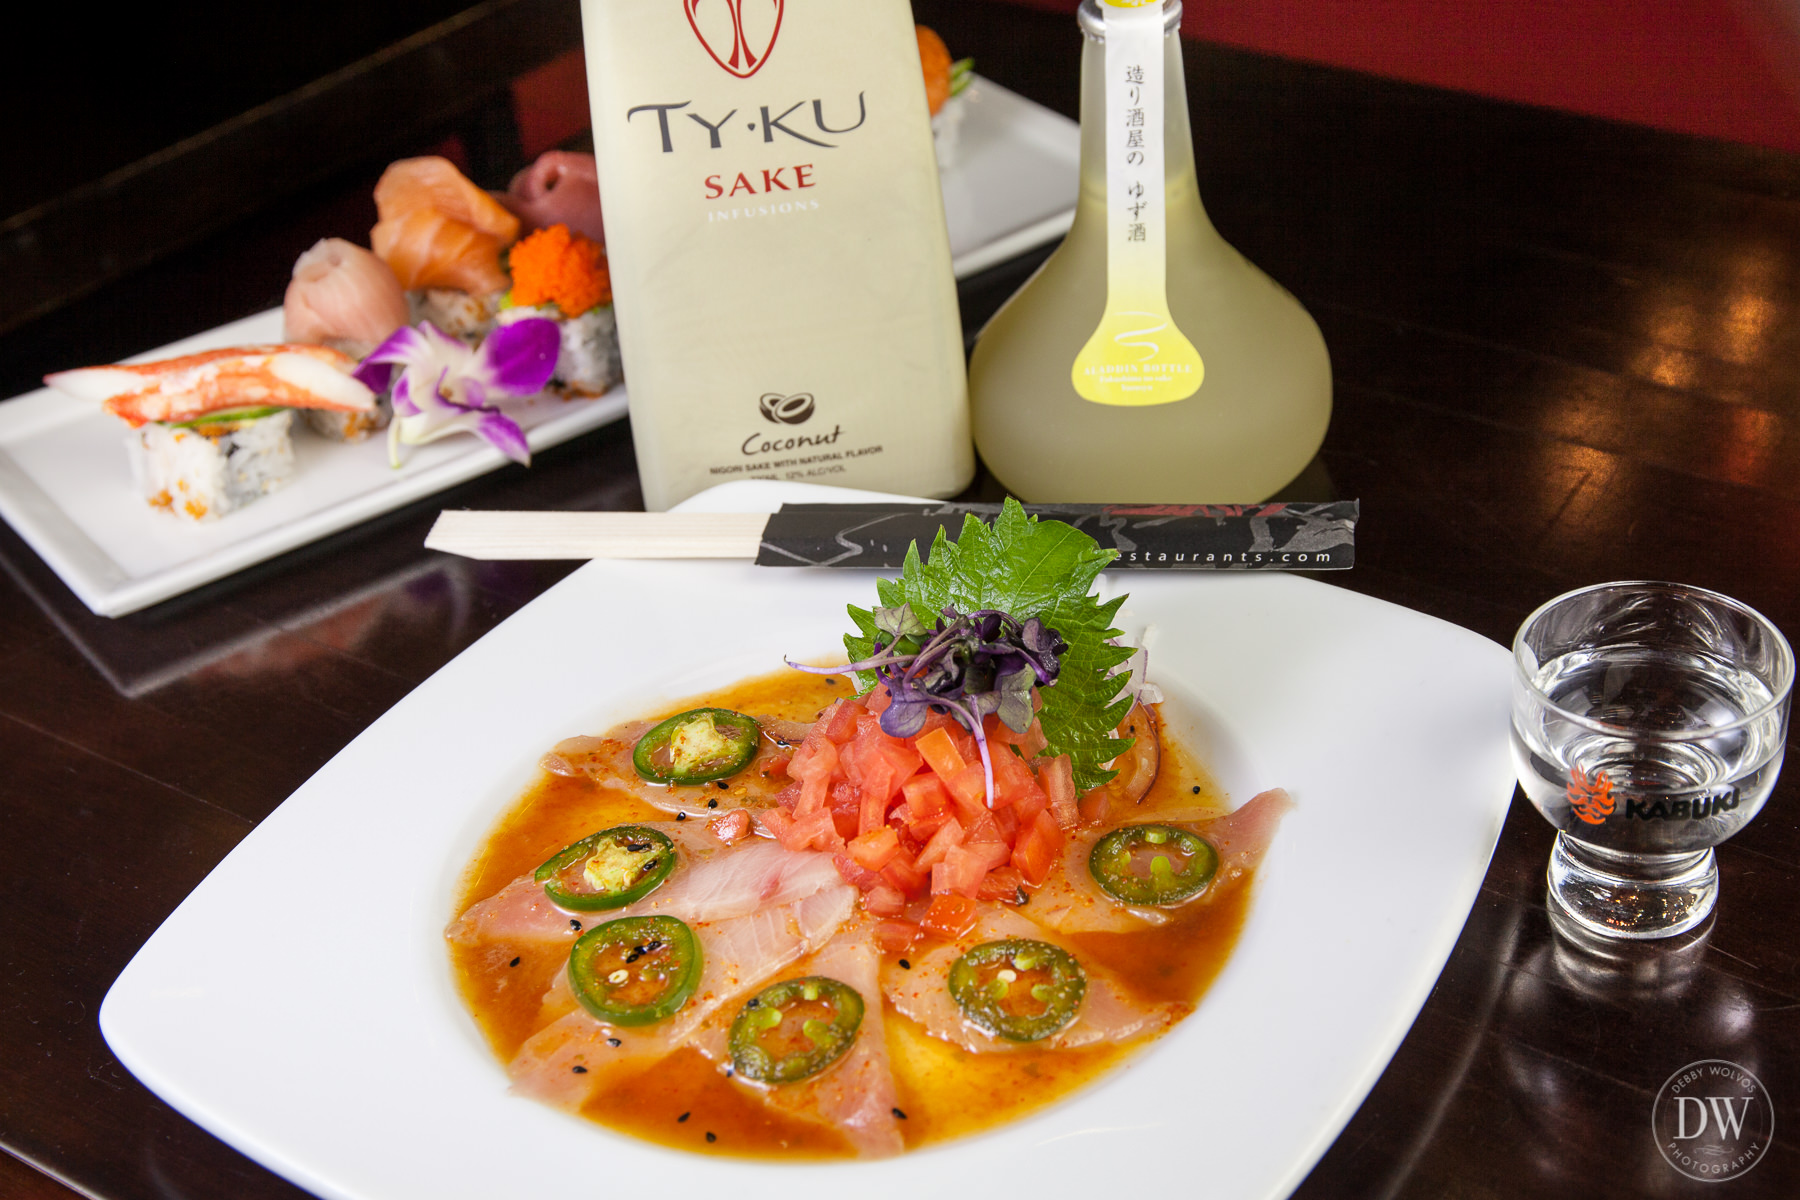 Yuji suggests ordering a sake like  Homare Aladdin Yuzu, a junmai made with yuzu juice (an aromatic Japanese citrus), to enjoy with yellowtail sashimi with  jalapeños and spicy ponzu sauce.